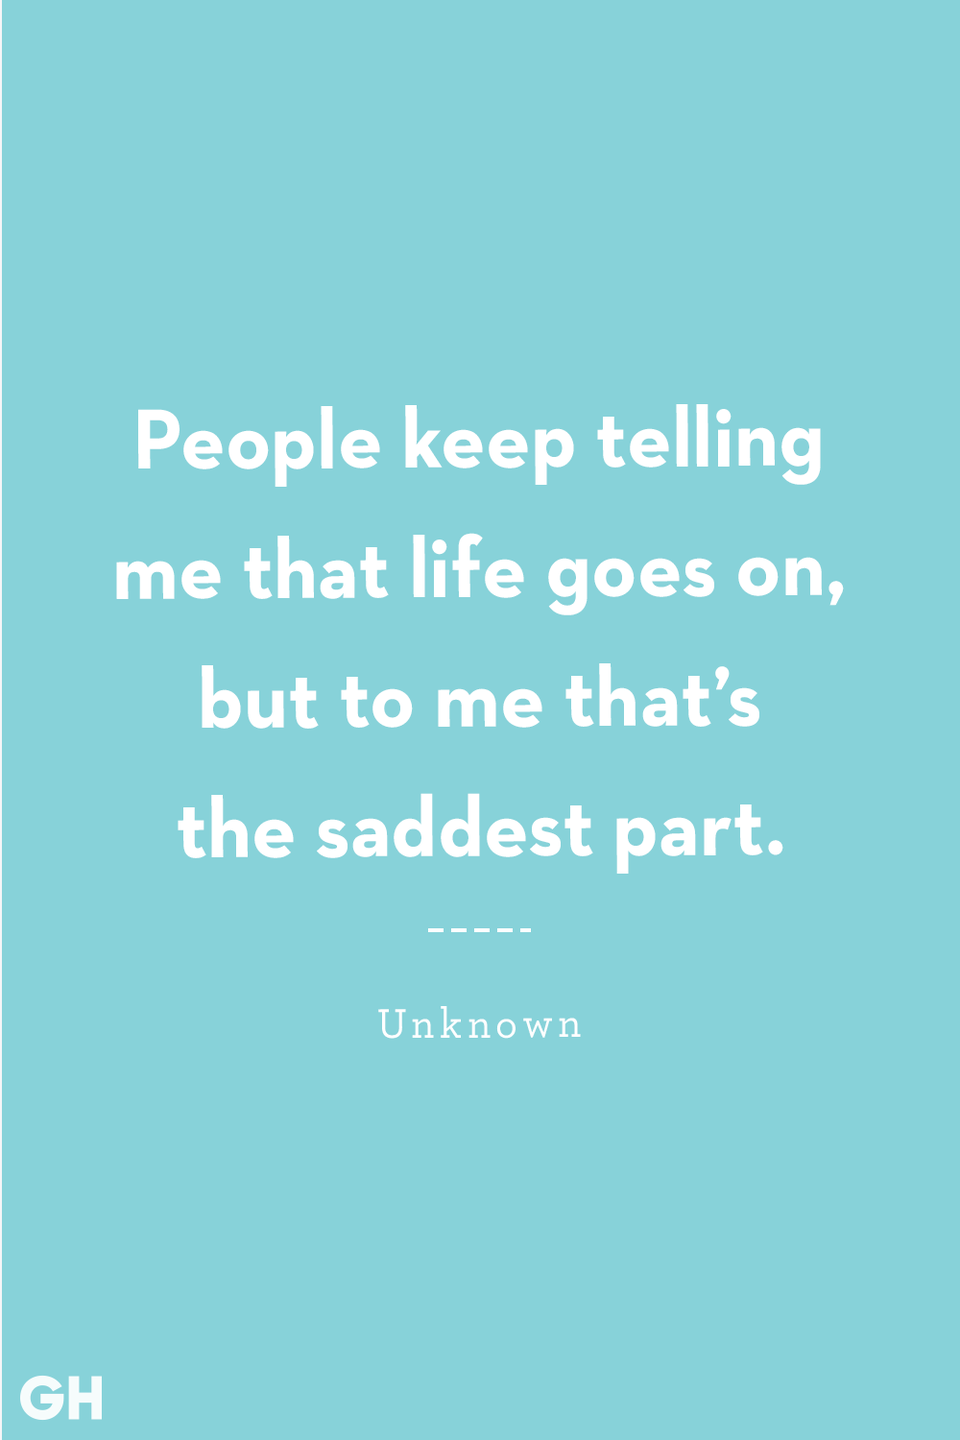 <p>People keep telling me that life goes on, but to me that's the saddest part.</p>